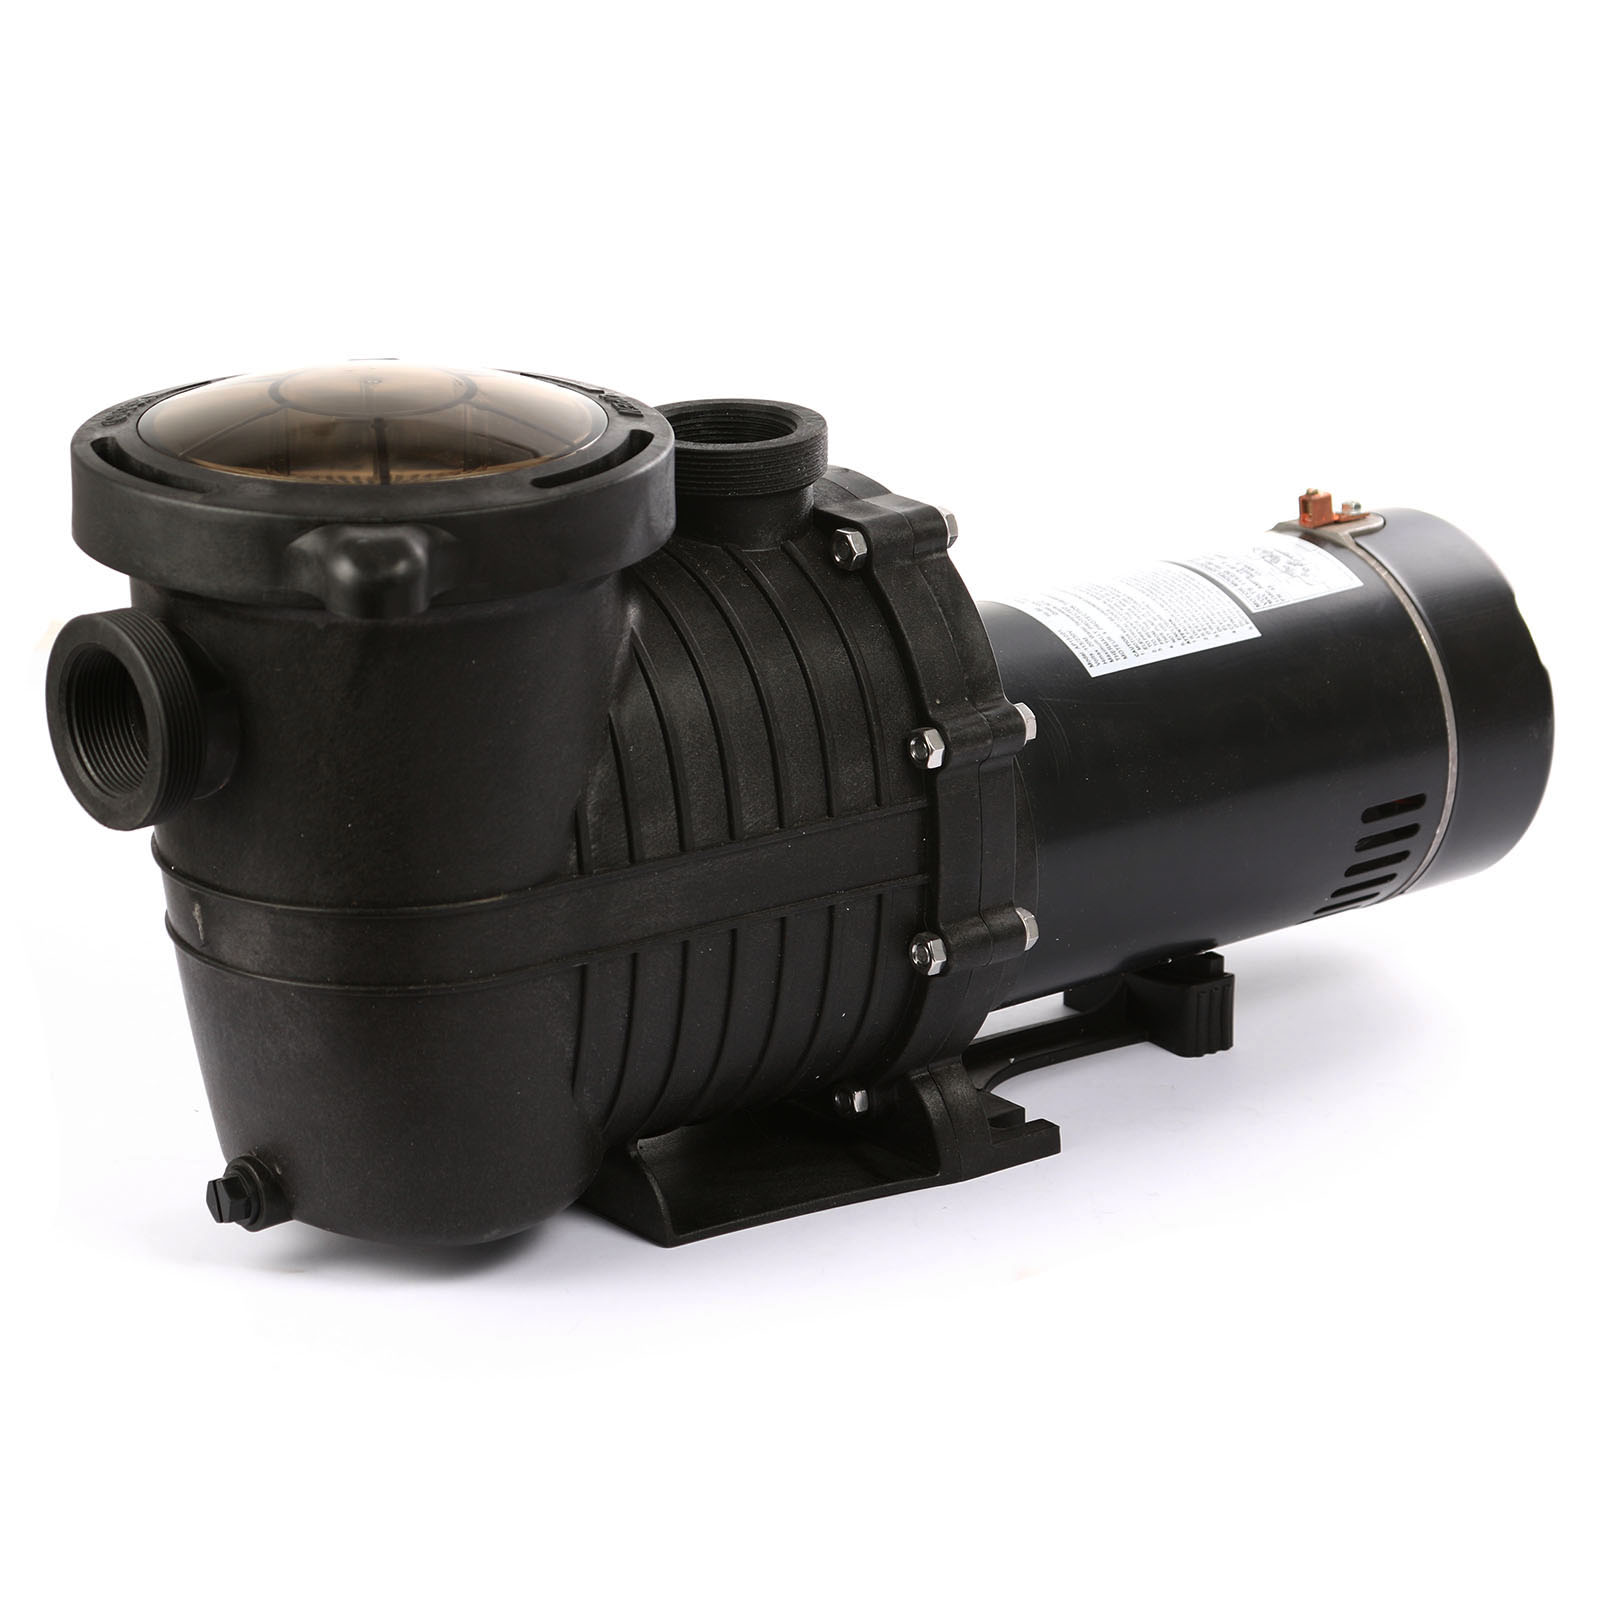 In ground motor 1 5hp swimming pool pump filter w for Inground pool pump and filter systems